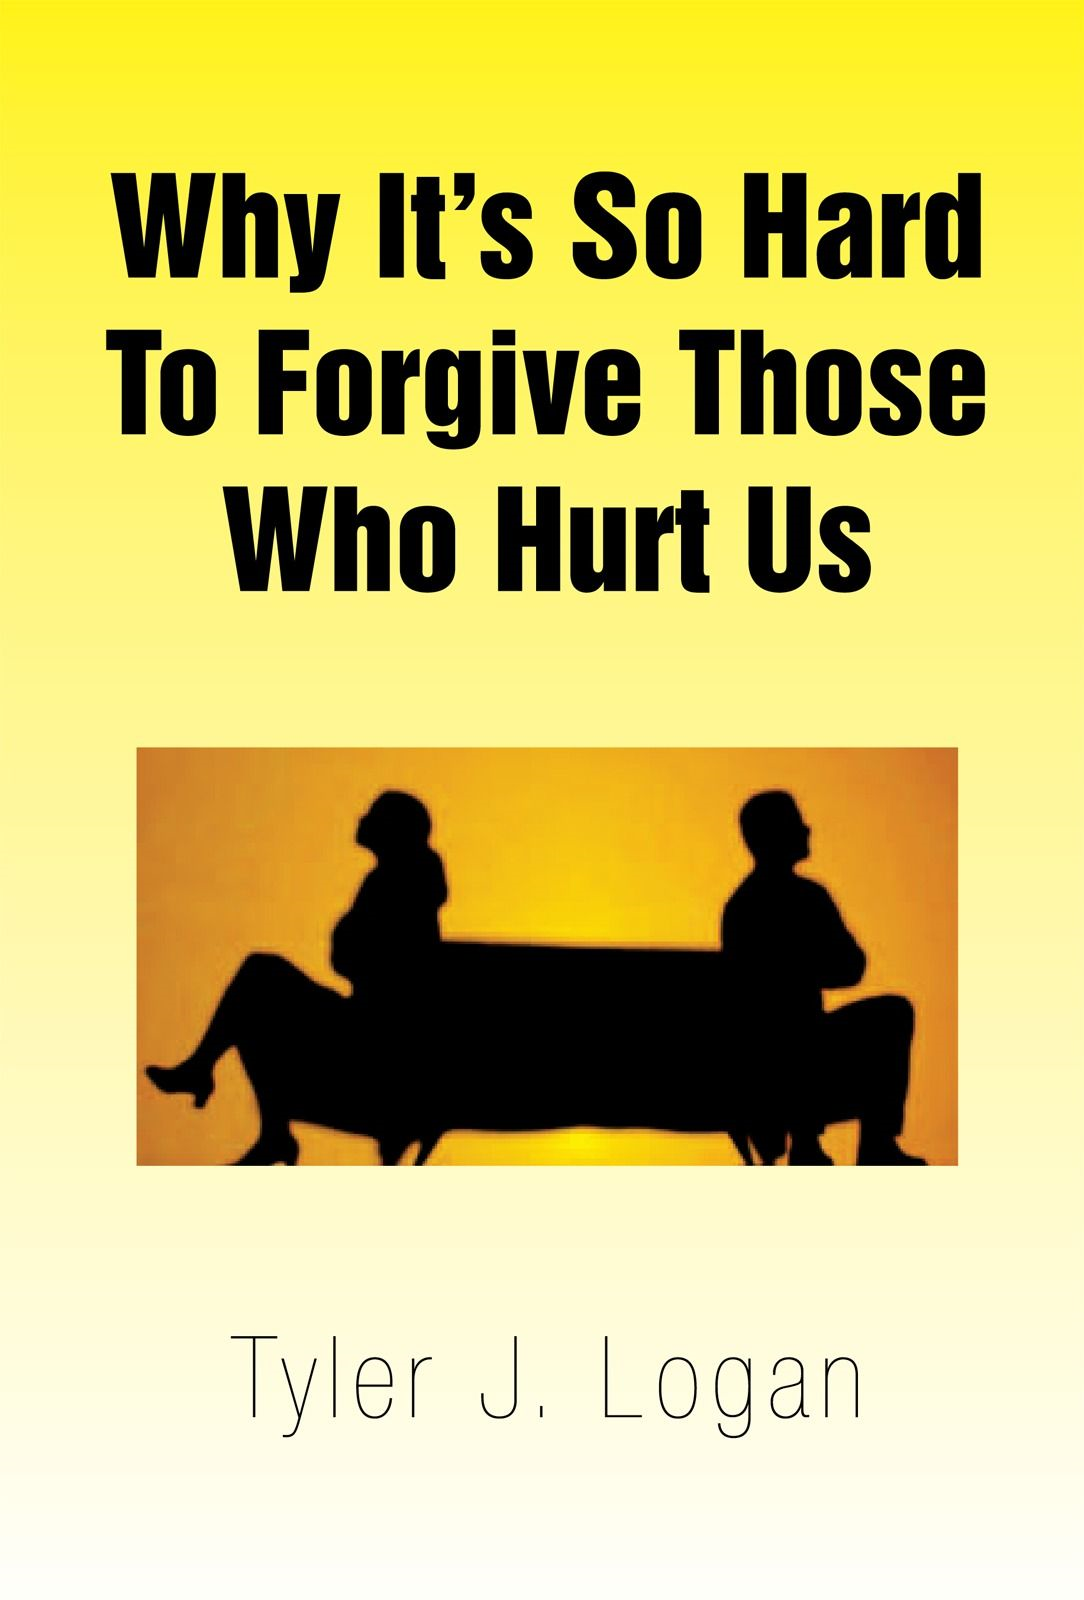 Why It¡¦s So Hard To Forgive Those Who Hurt Us By: Tyler J. Logan